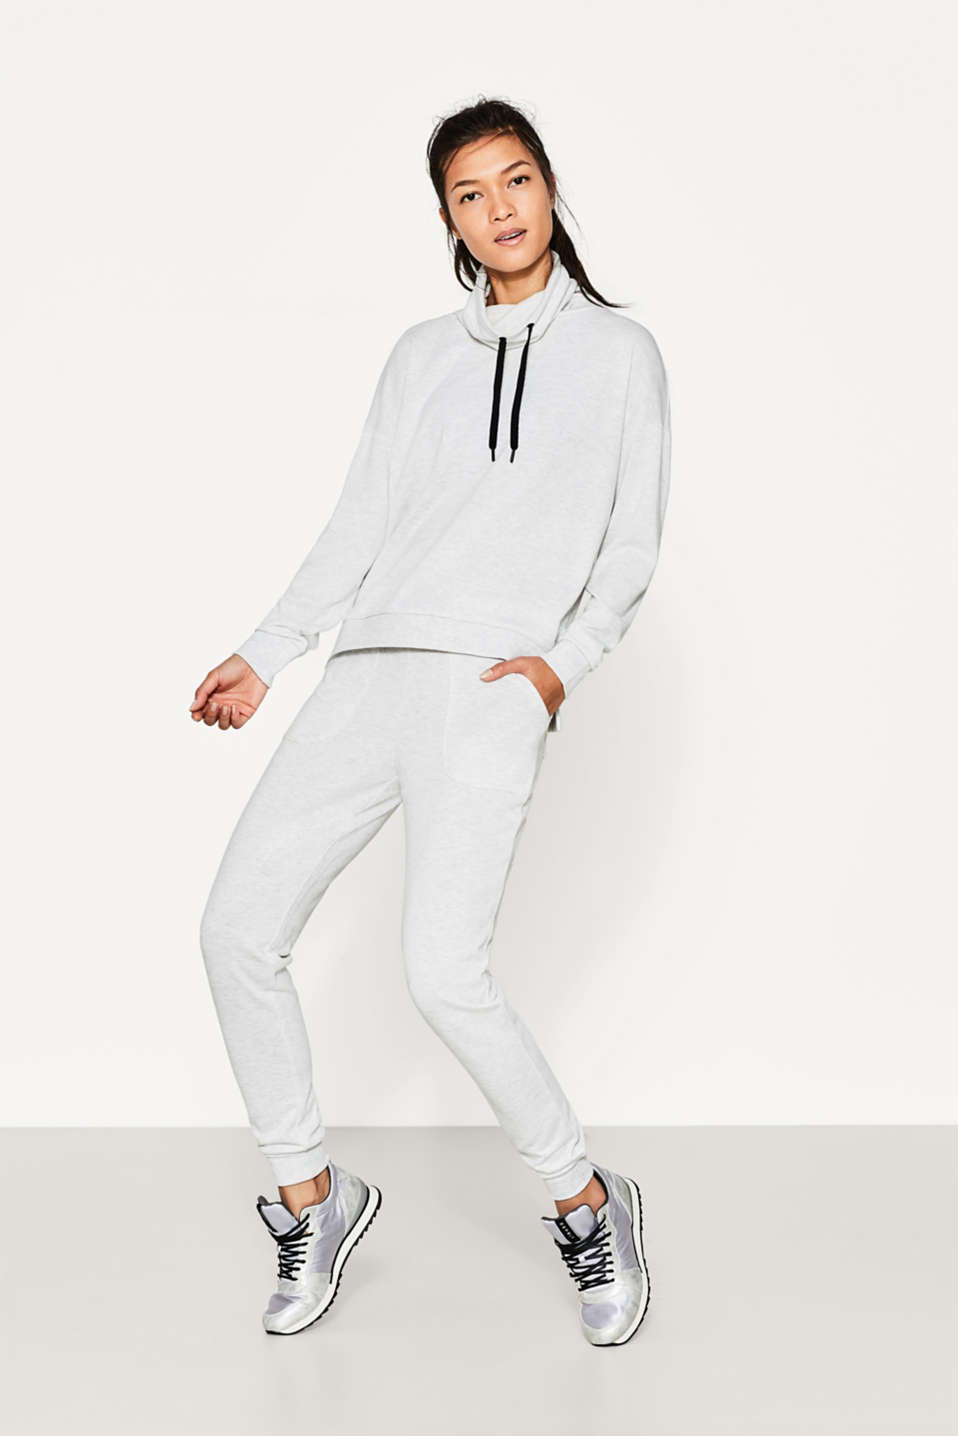 Esprit - Flowing sweatshirt with a high collar